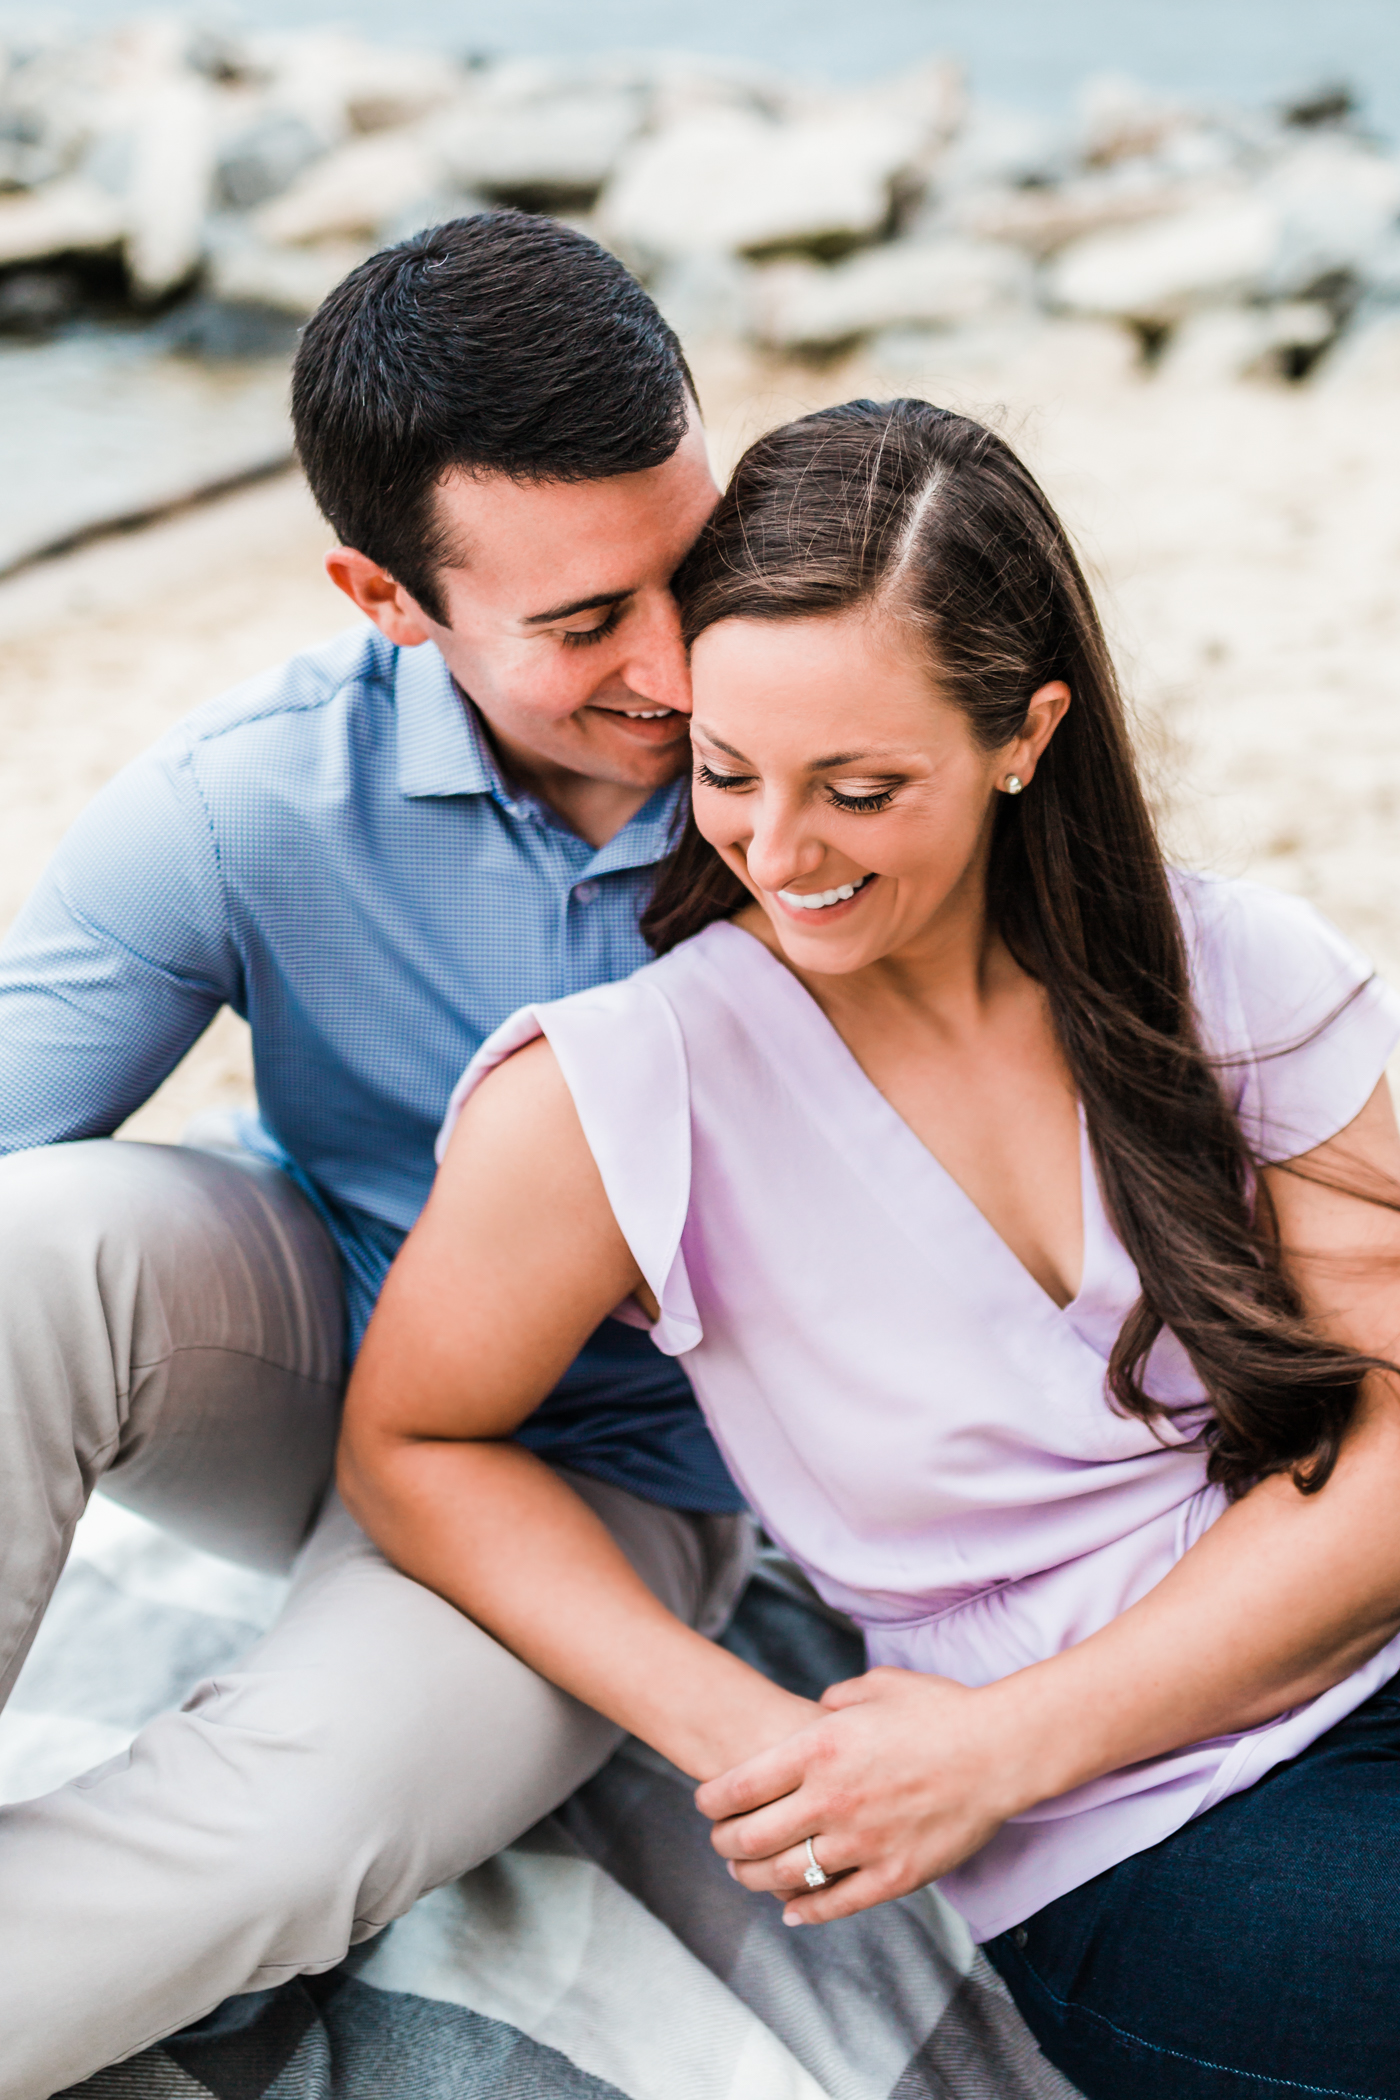 couple snuggling together - best husband and wife photography and cinematography team in Maryland